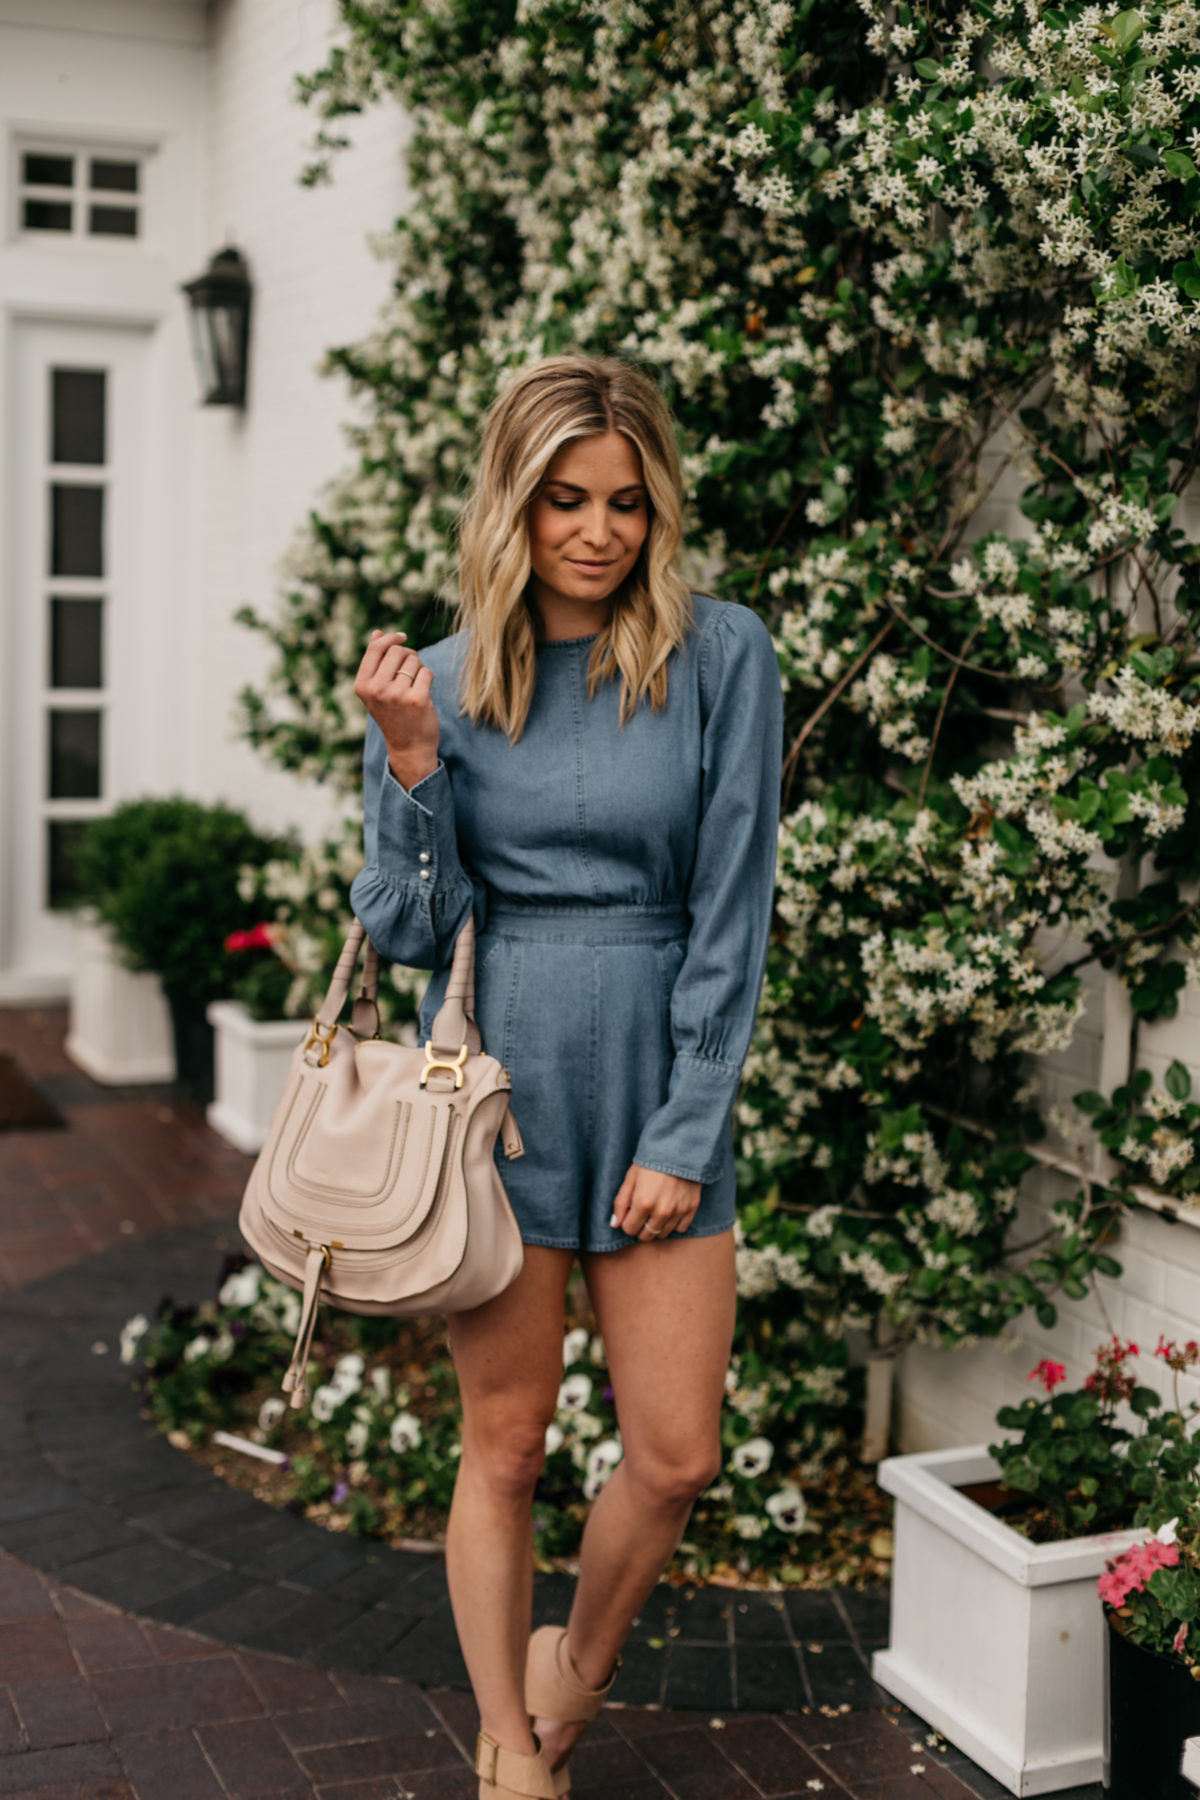 Spring Rompers on the blog - Brooke's outfit details: Denim Romper // Chloe Marcie Handbag